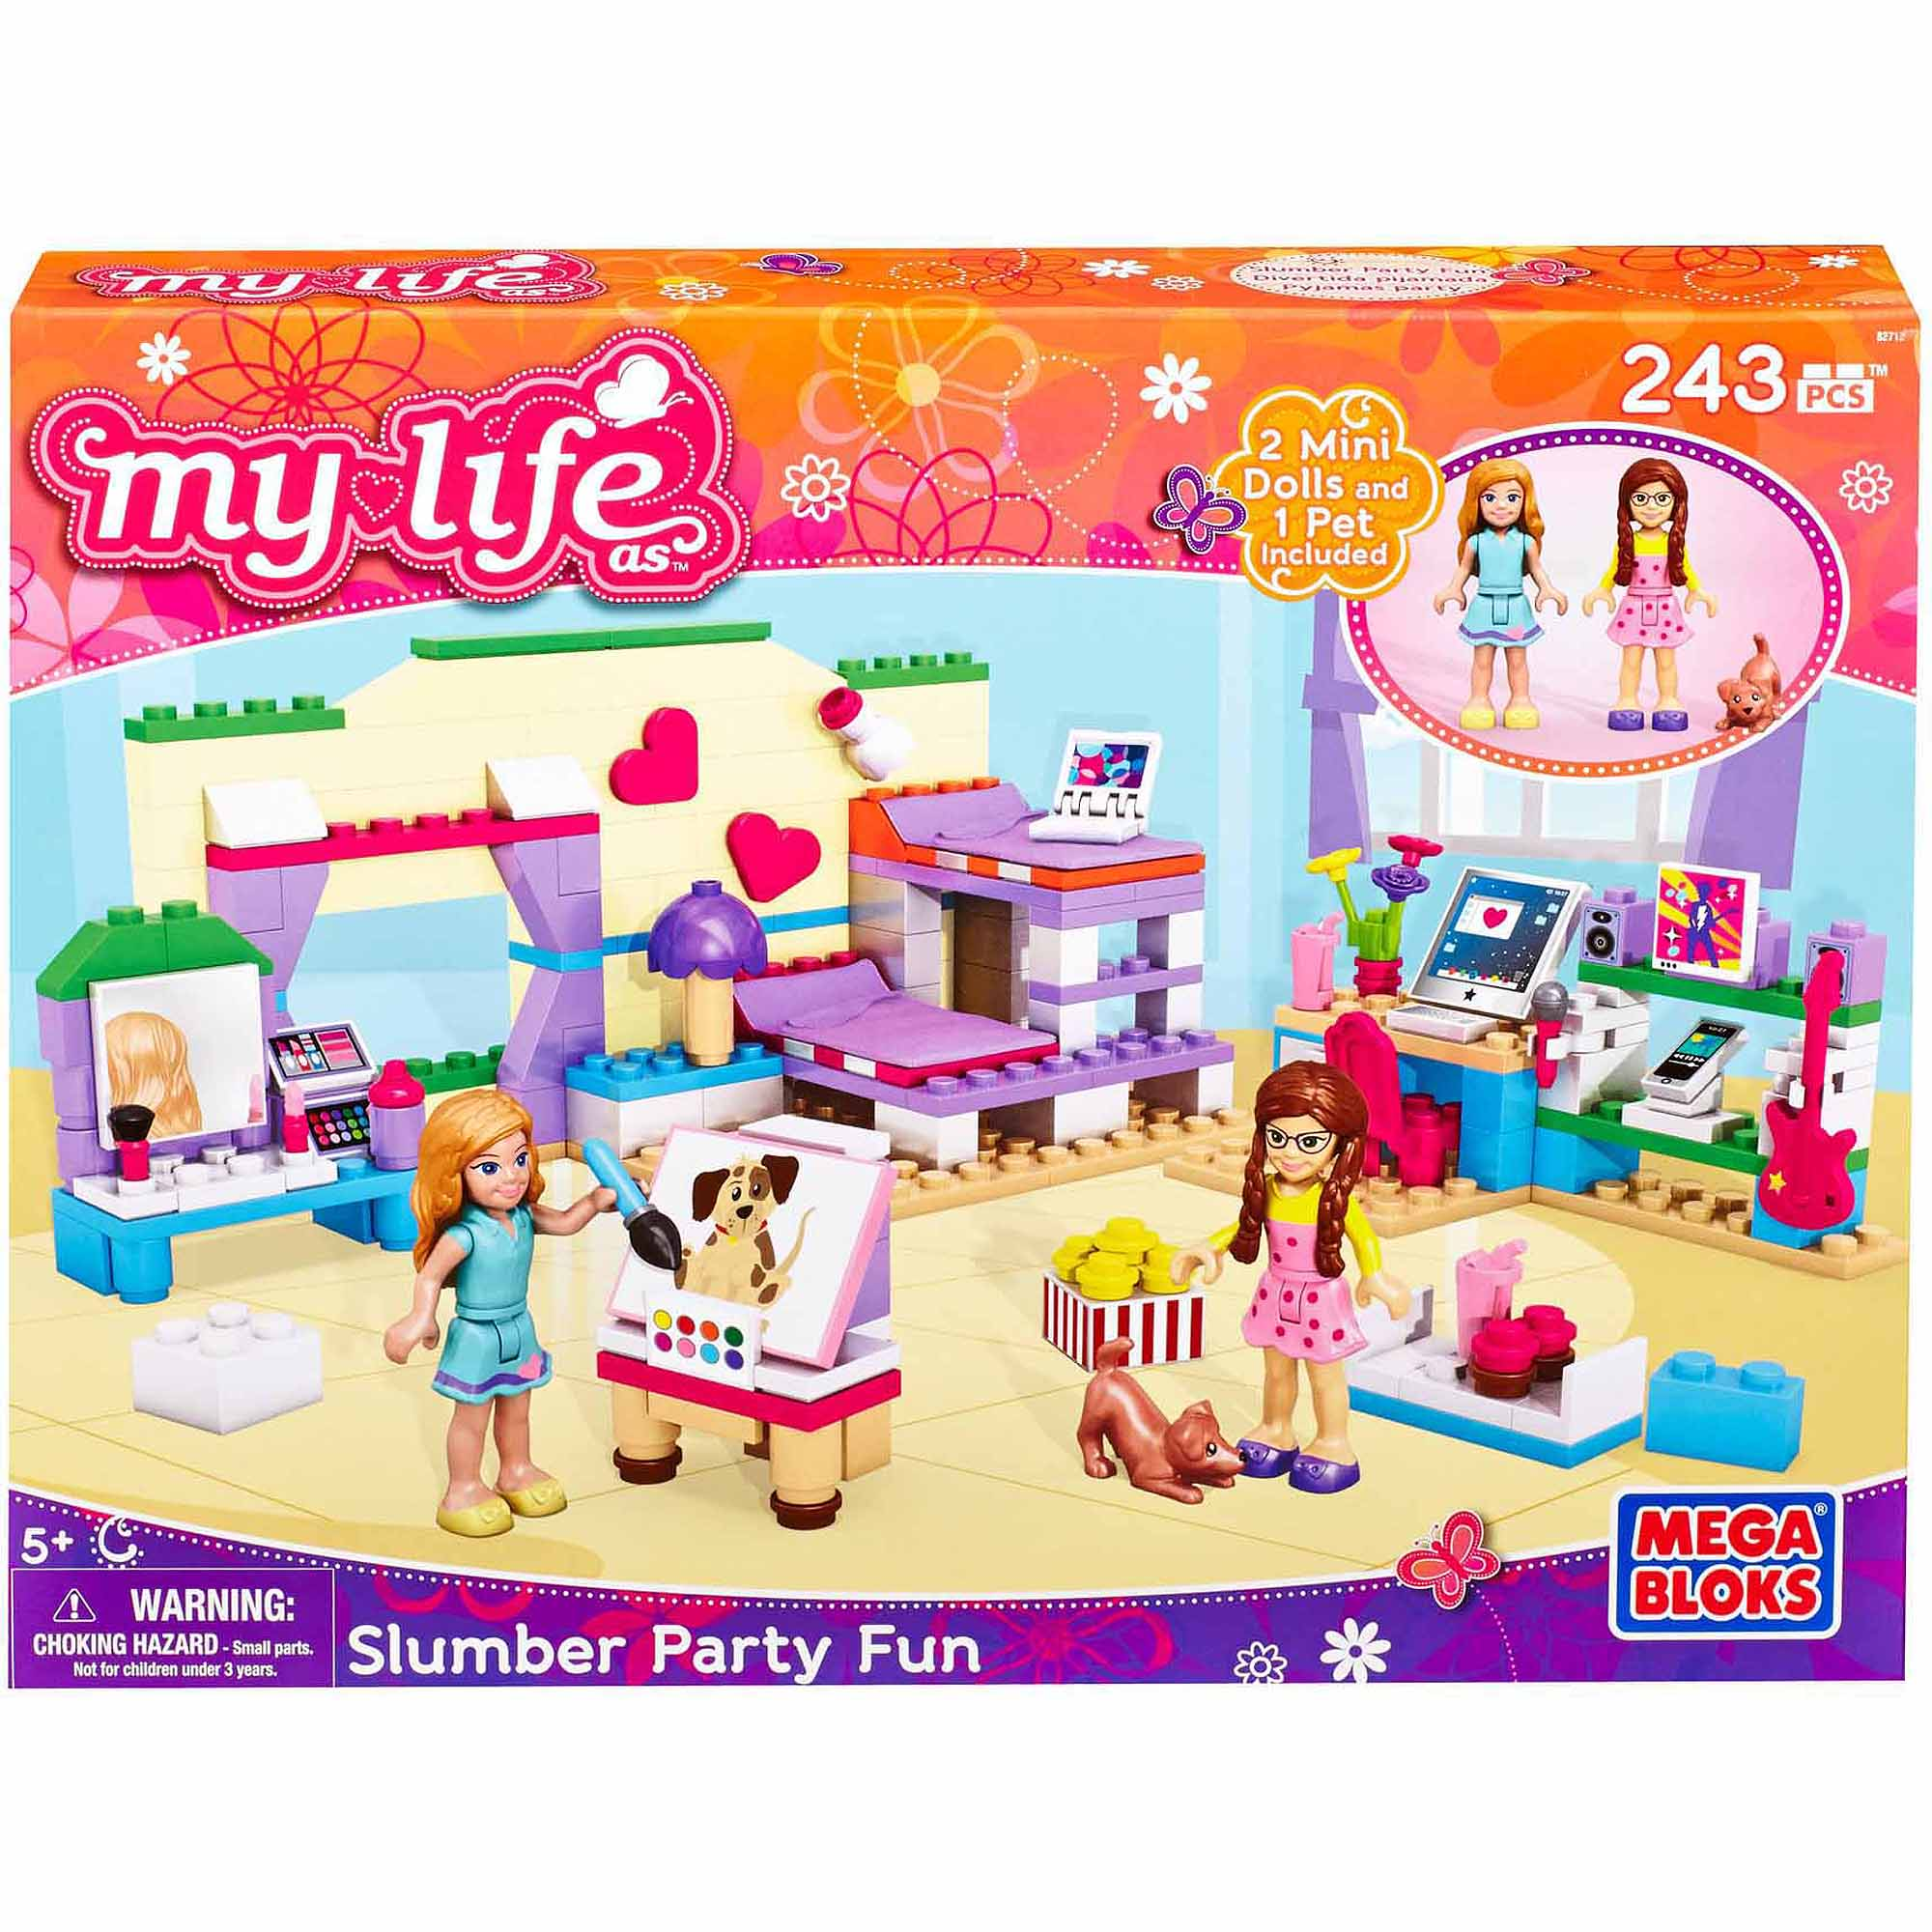 Mega Bloks My Life As Slumber Party Play Set by My Life